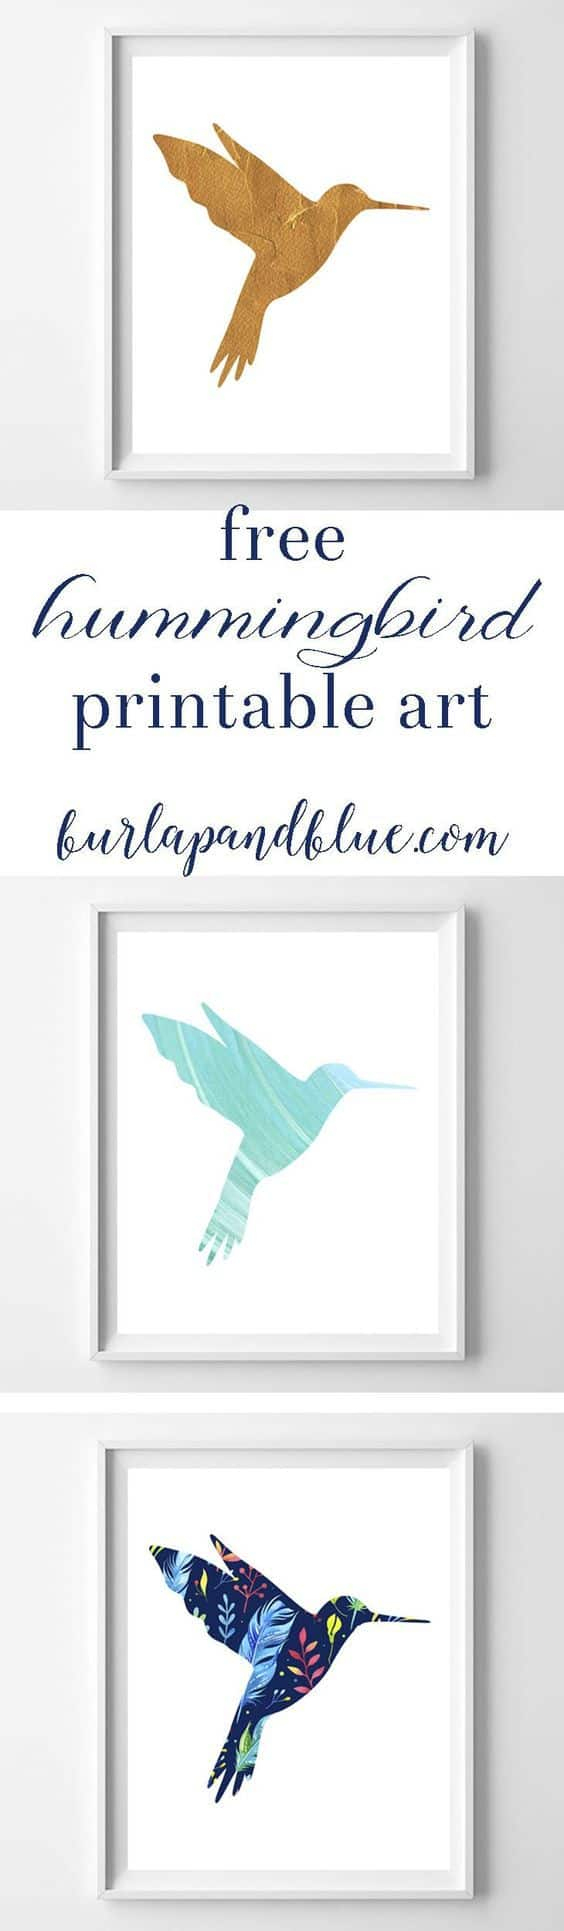 Hummingbird Art {3 Free Printable Designs} - Free Printable Pictures Of Hummingbirds